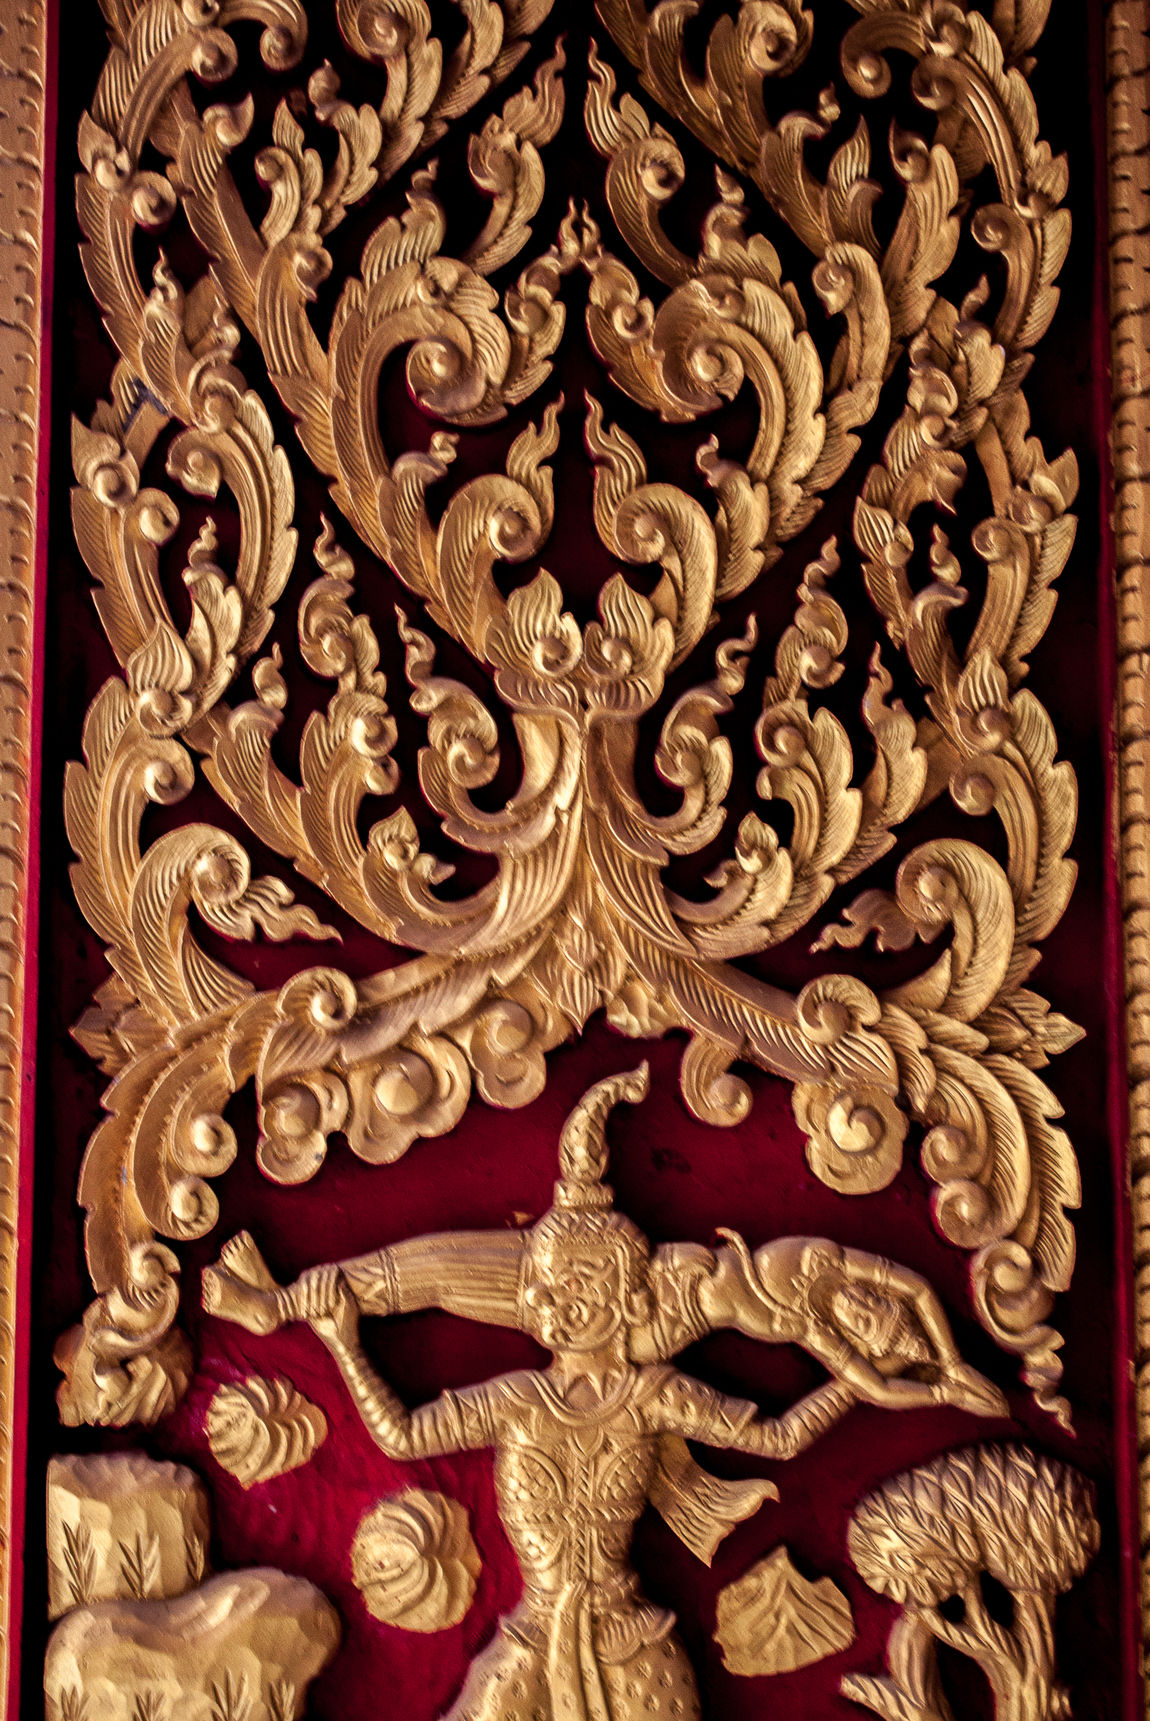 Art Backgrounds Canon Canonphotography Carving - Craft Product Close-up Colour Of Life Creativity Design Eyeemfestival16 Full Frame No People Painting Painting #Creating Painting Art Painting My Nails Painting With Light Paintings Thai Painting